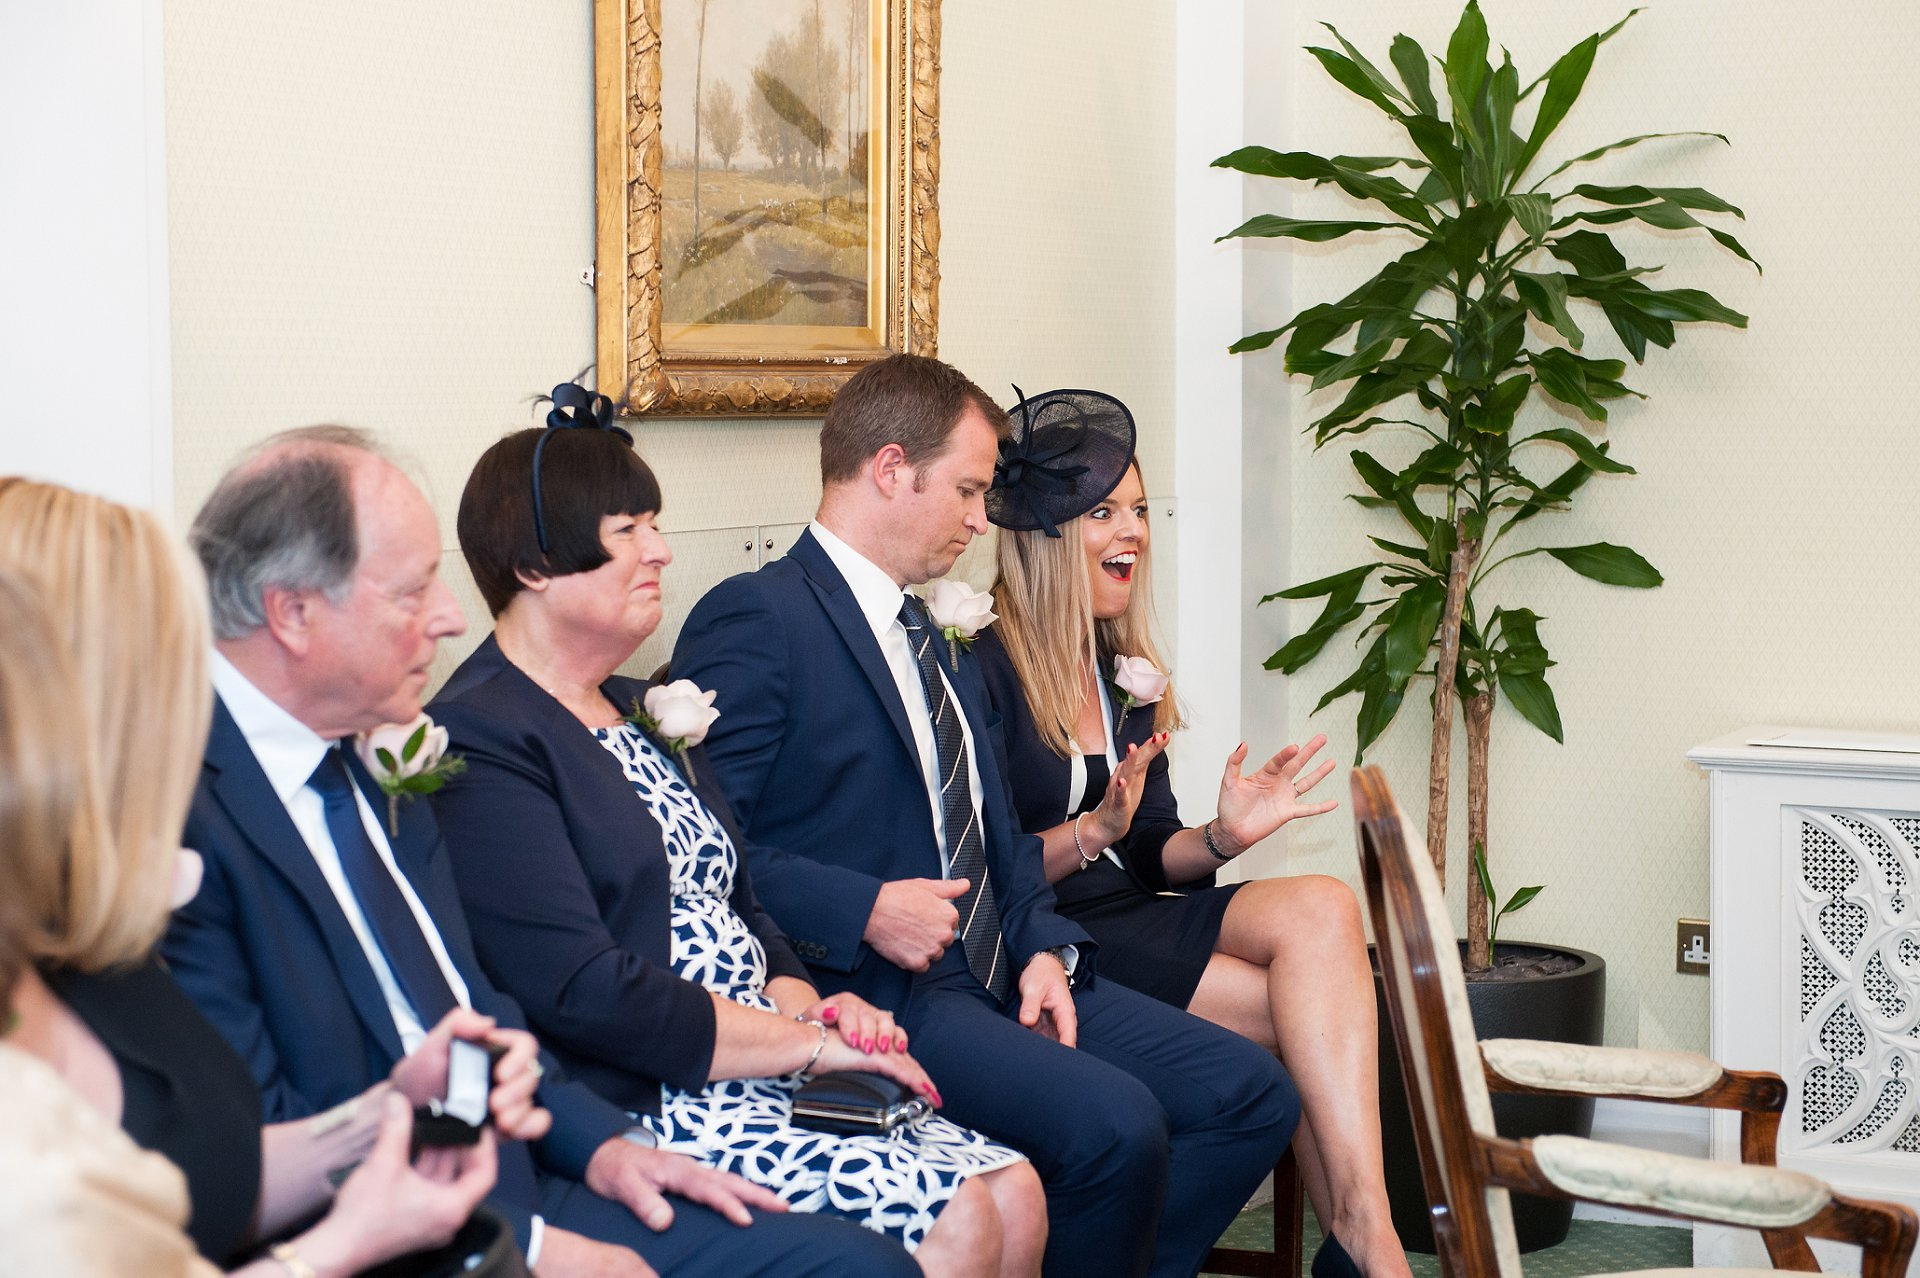 Guests laughing during the civil ceremony at Chelsea Register Office